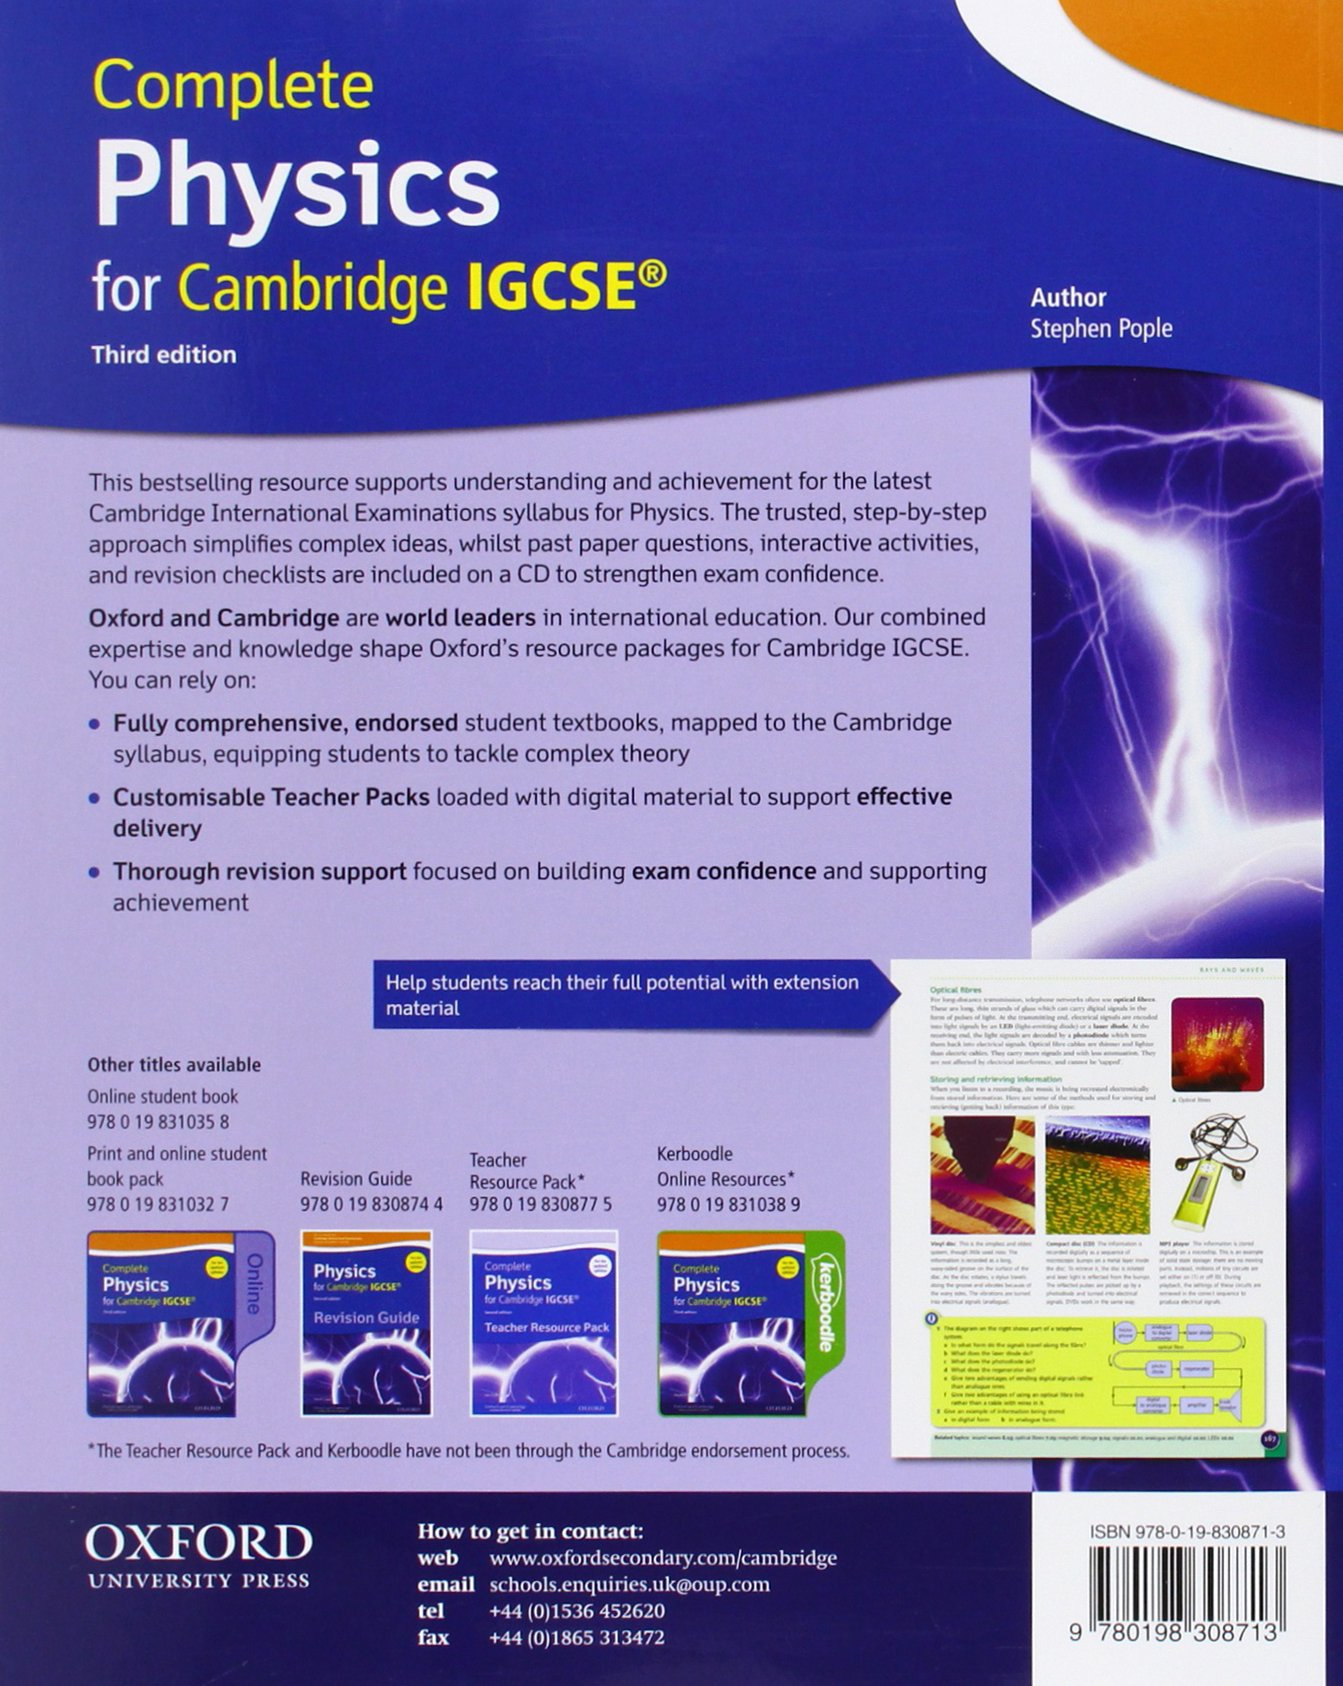 Complete Physics Book